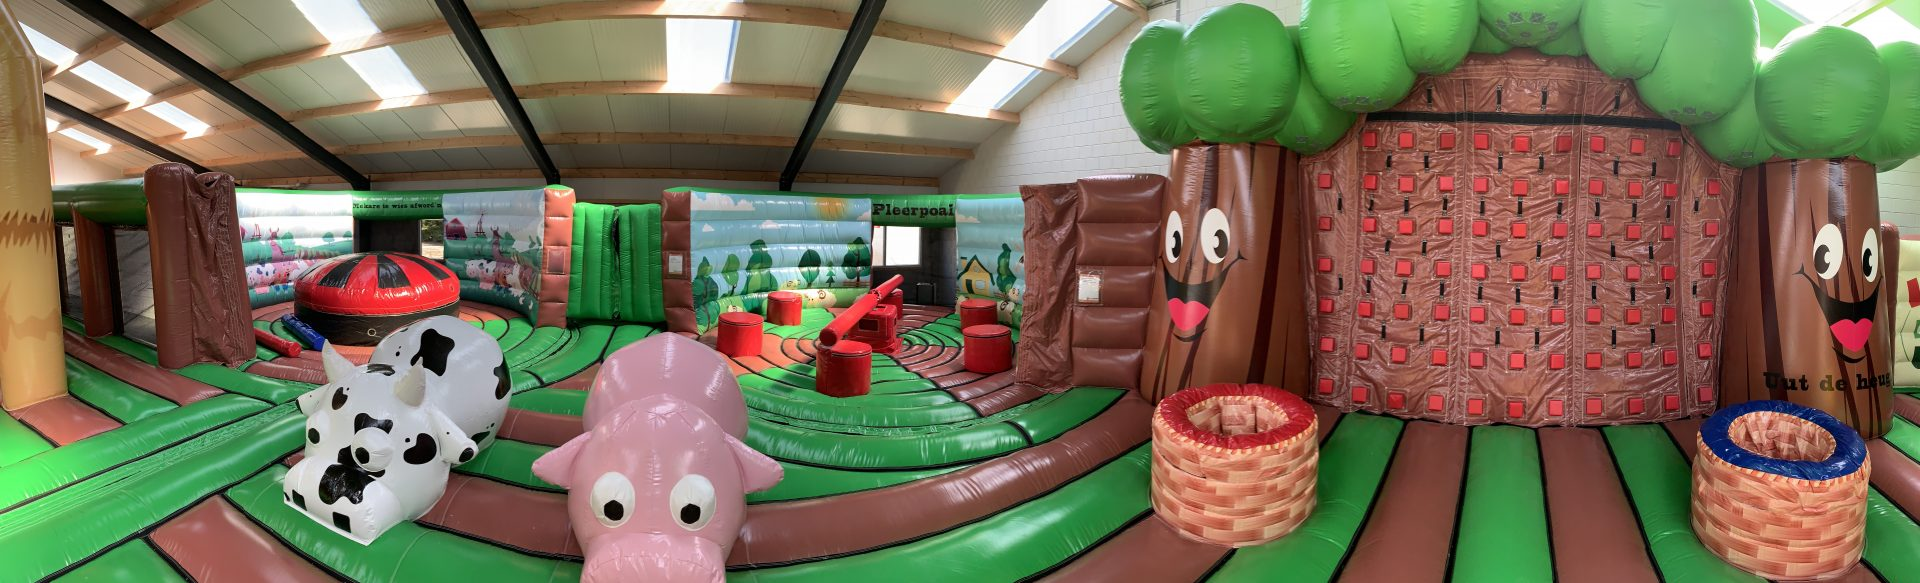 Heather Inflatable PArk farm theme - Jump Factory